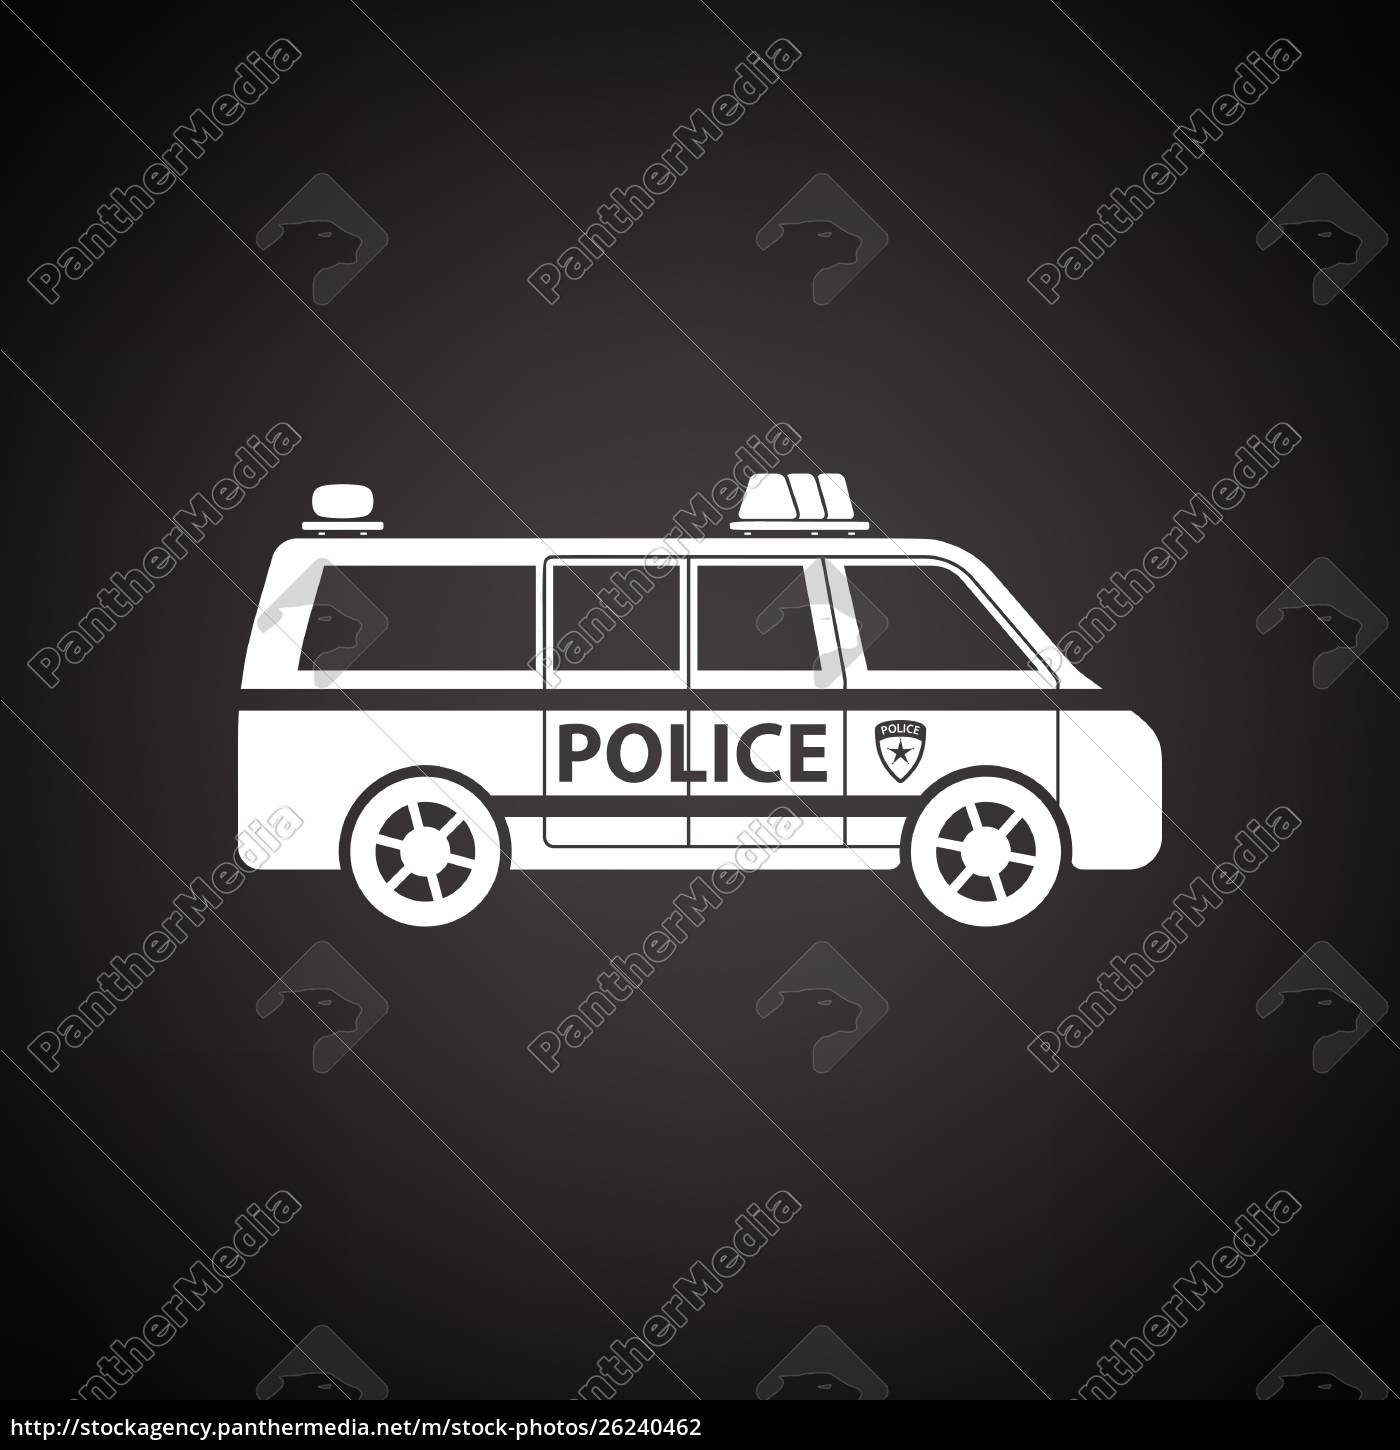 police, van, icon., black, background, with - 26240462